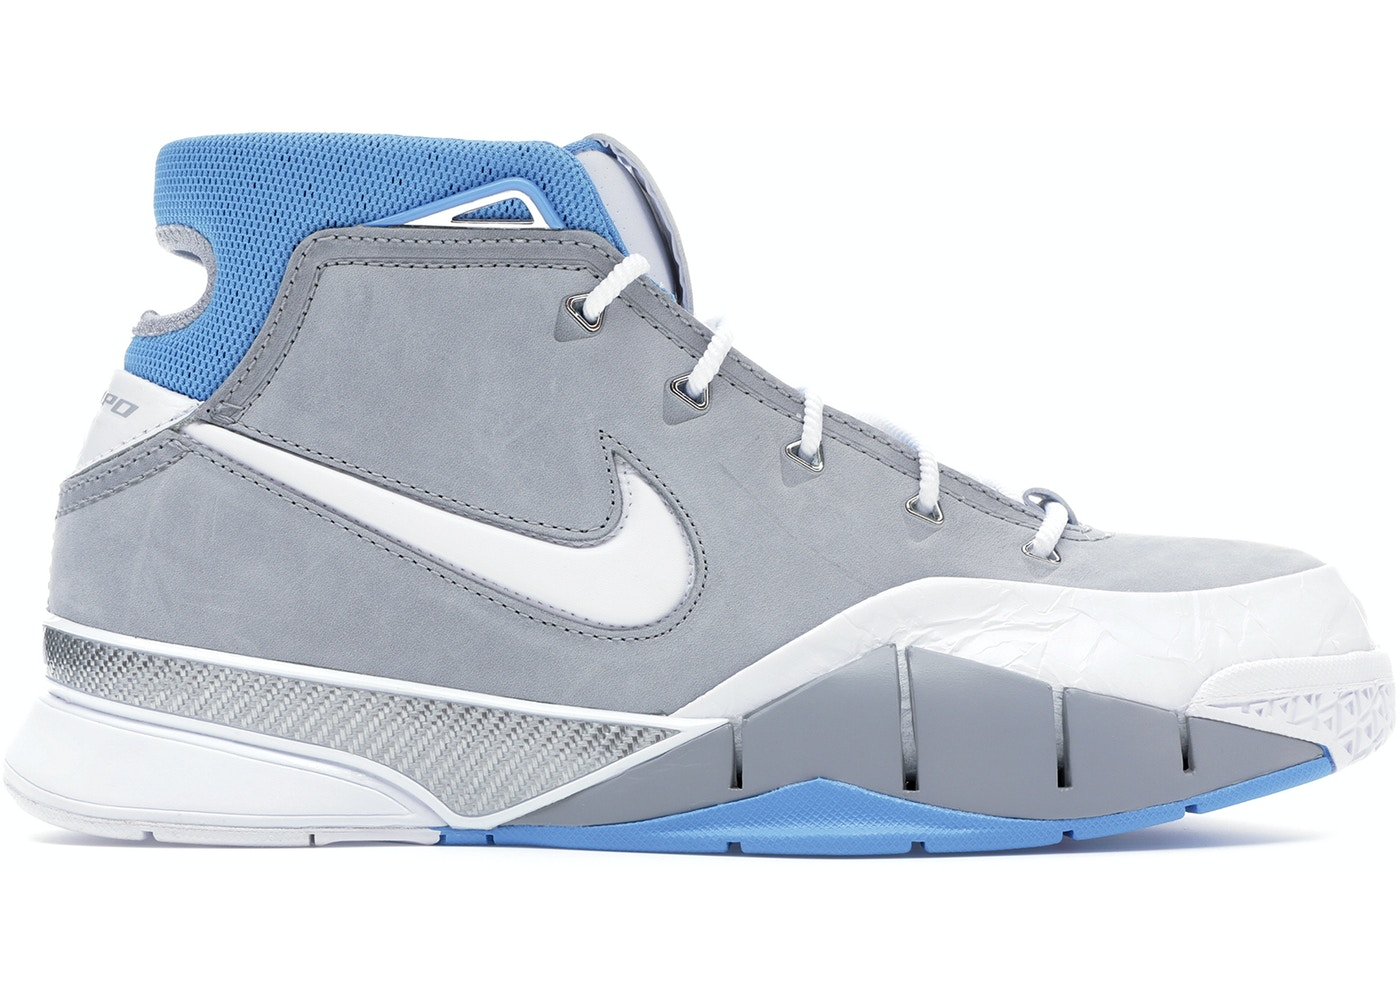 official photos e2898 b05f4 Kobe 1 Protro MPLS - AQ2728-001